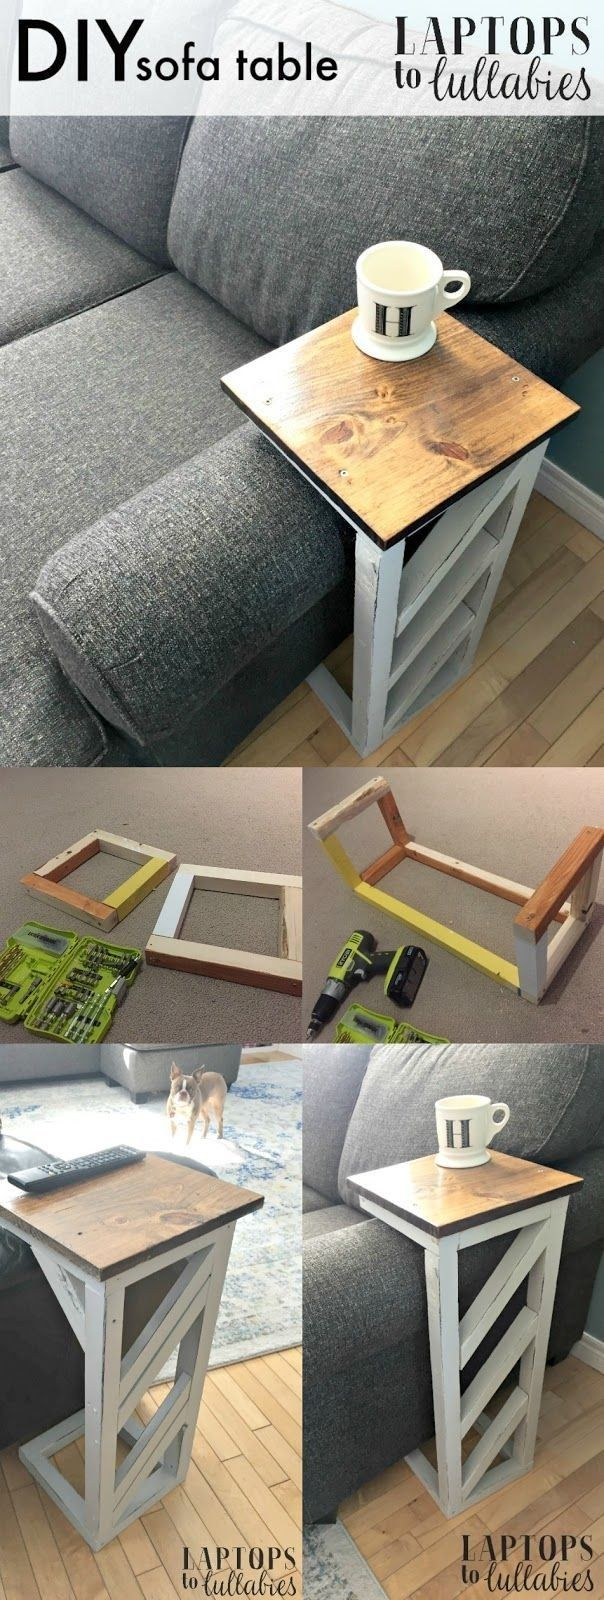 Diy Sofa Table, Diy Couch Table, Diy Sofa Arm Table, Diy Couch Arm